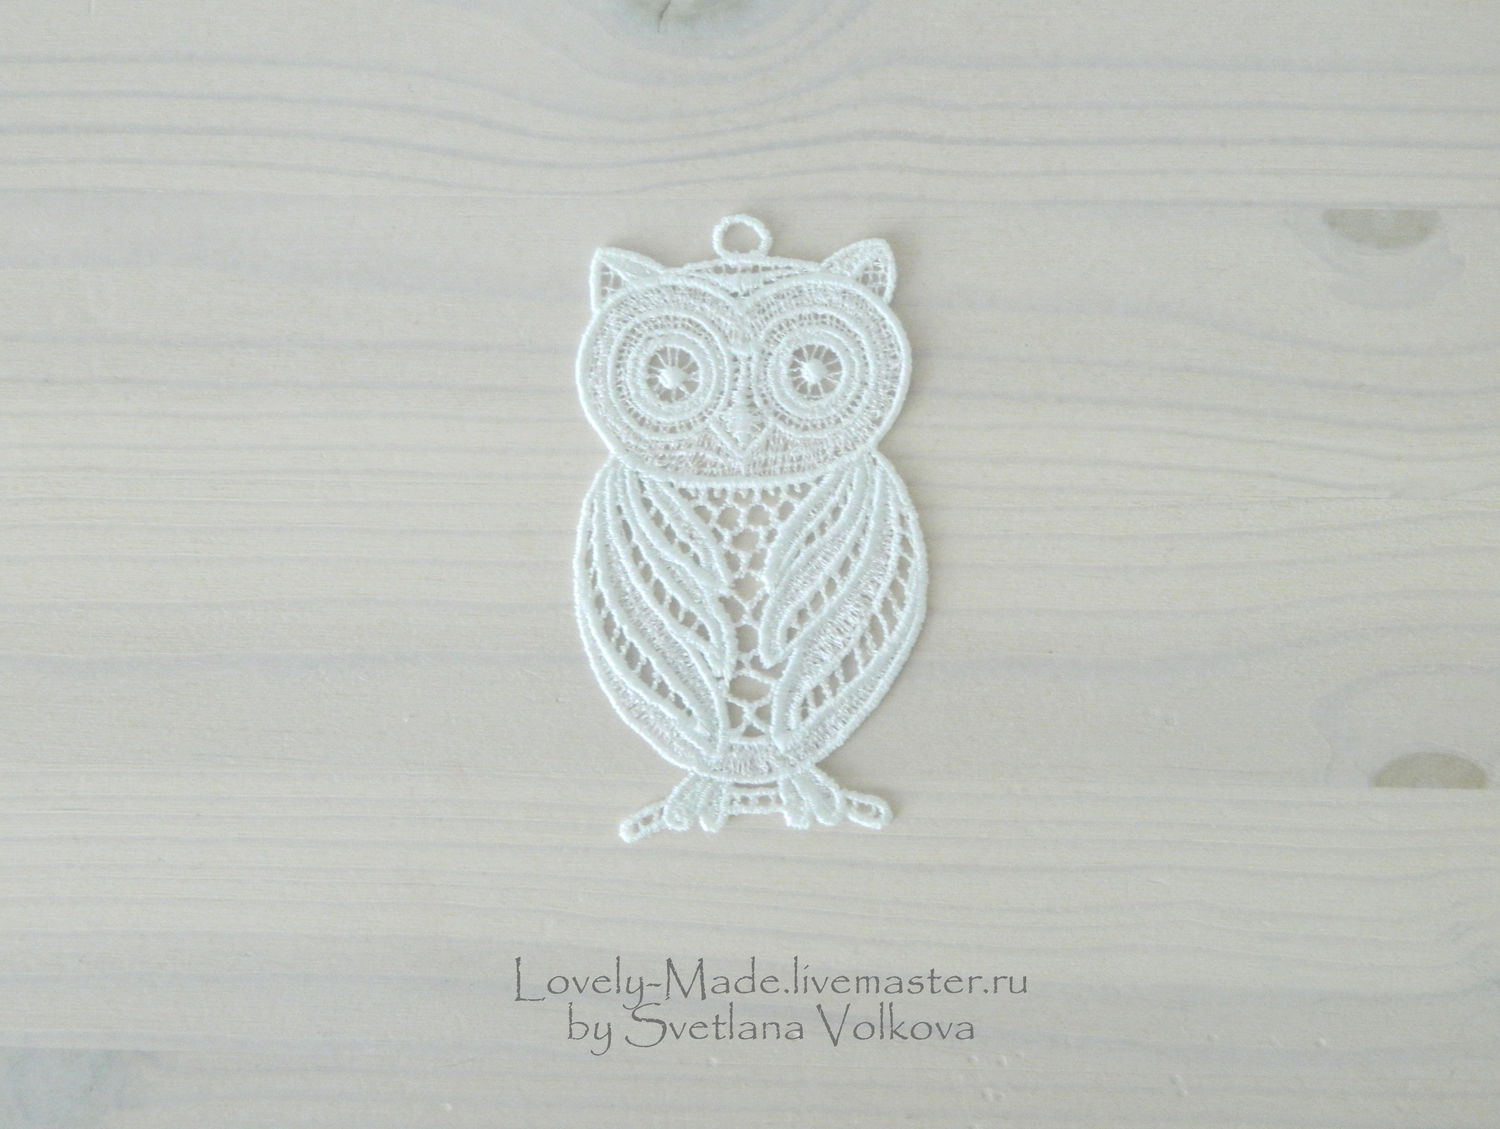 Owls handmade. Souvenirs, small gifts for holiday and just to set the mood and attract wise thoughts. Owls have a Lacy texture, with perfectly hold its shape.